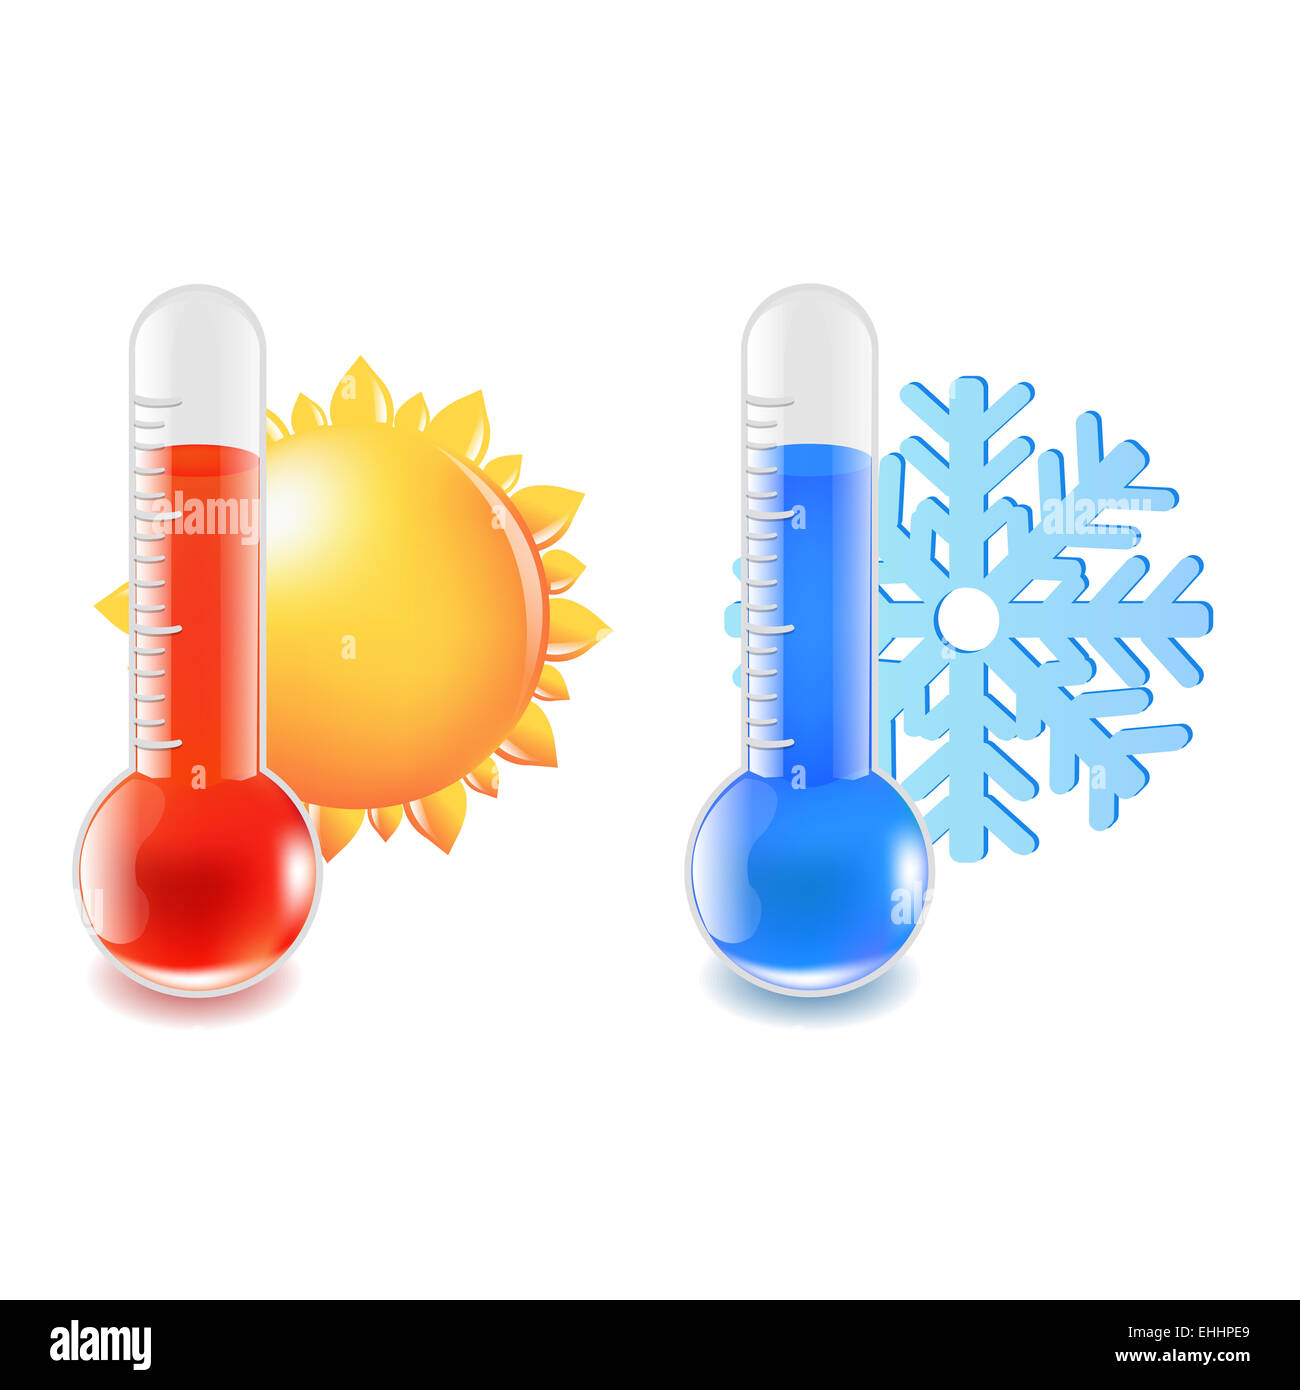 Thermometer Hot And Cold Temperature - Stock Image